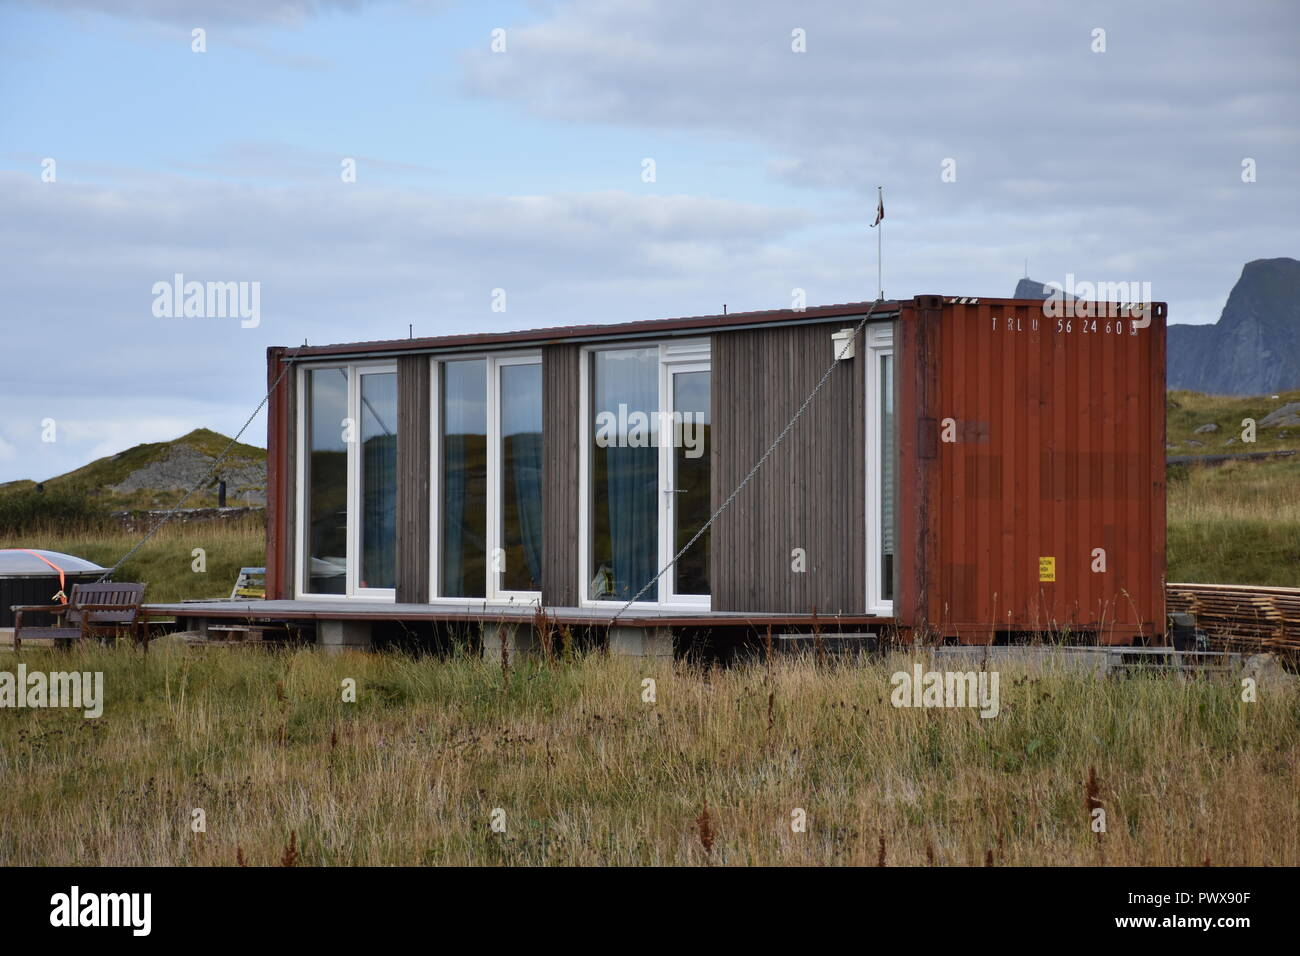 Haus Container Metall Container Stock Photos Metall Container Stock